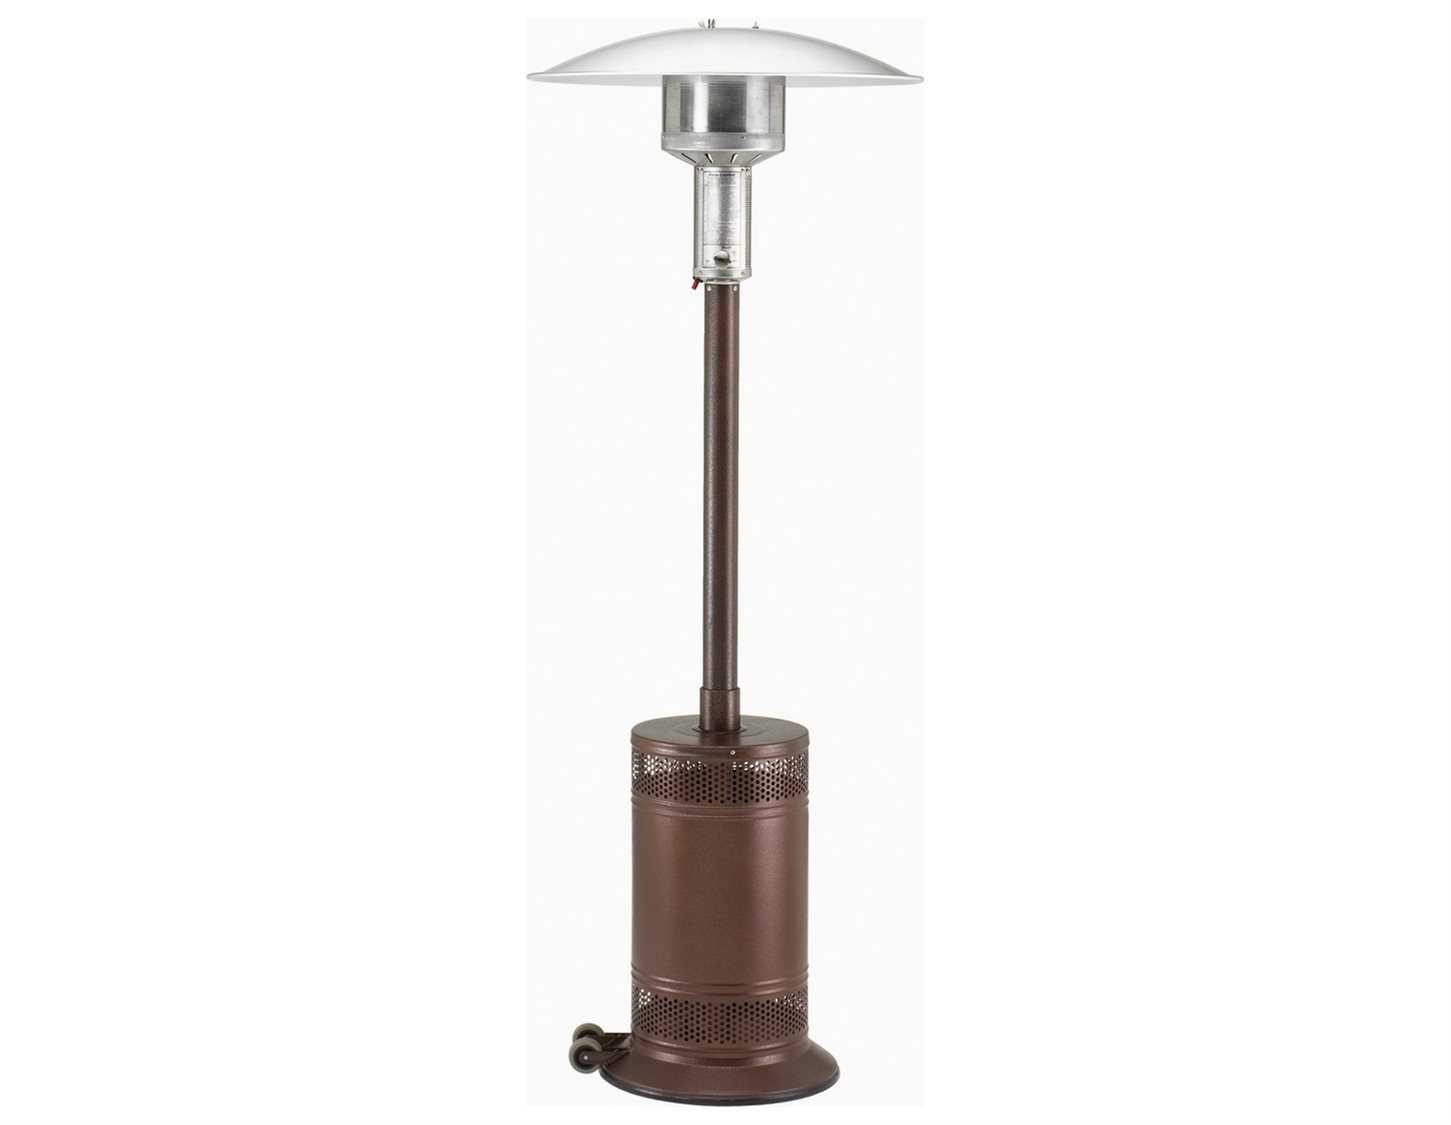 Patio comfort antique bronze steel infrared propane heater for Infrared patio heater vs propane